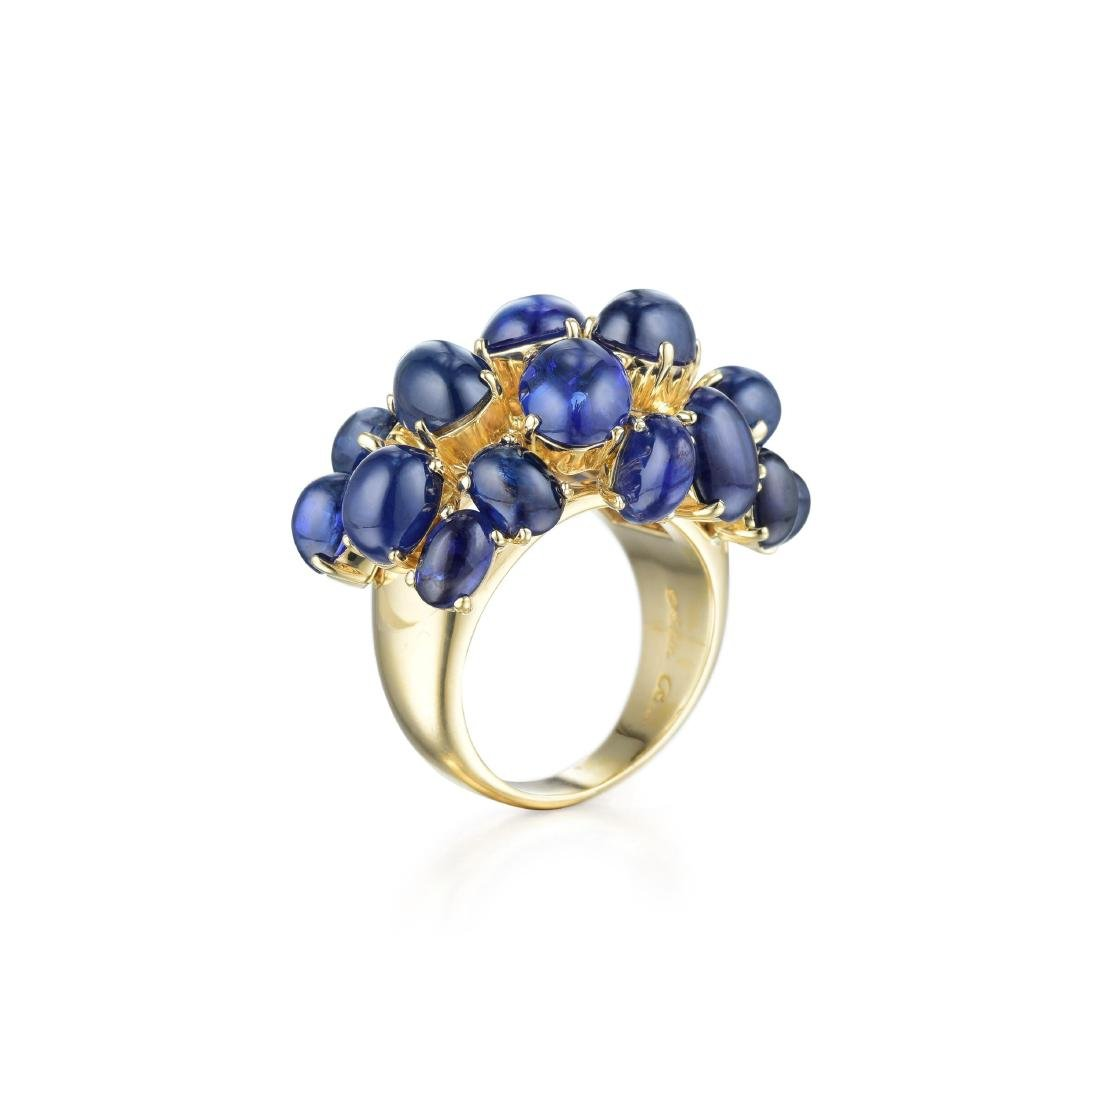 Aletto Brothers 18K Gold Burmese Sapphire Cluster Ring